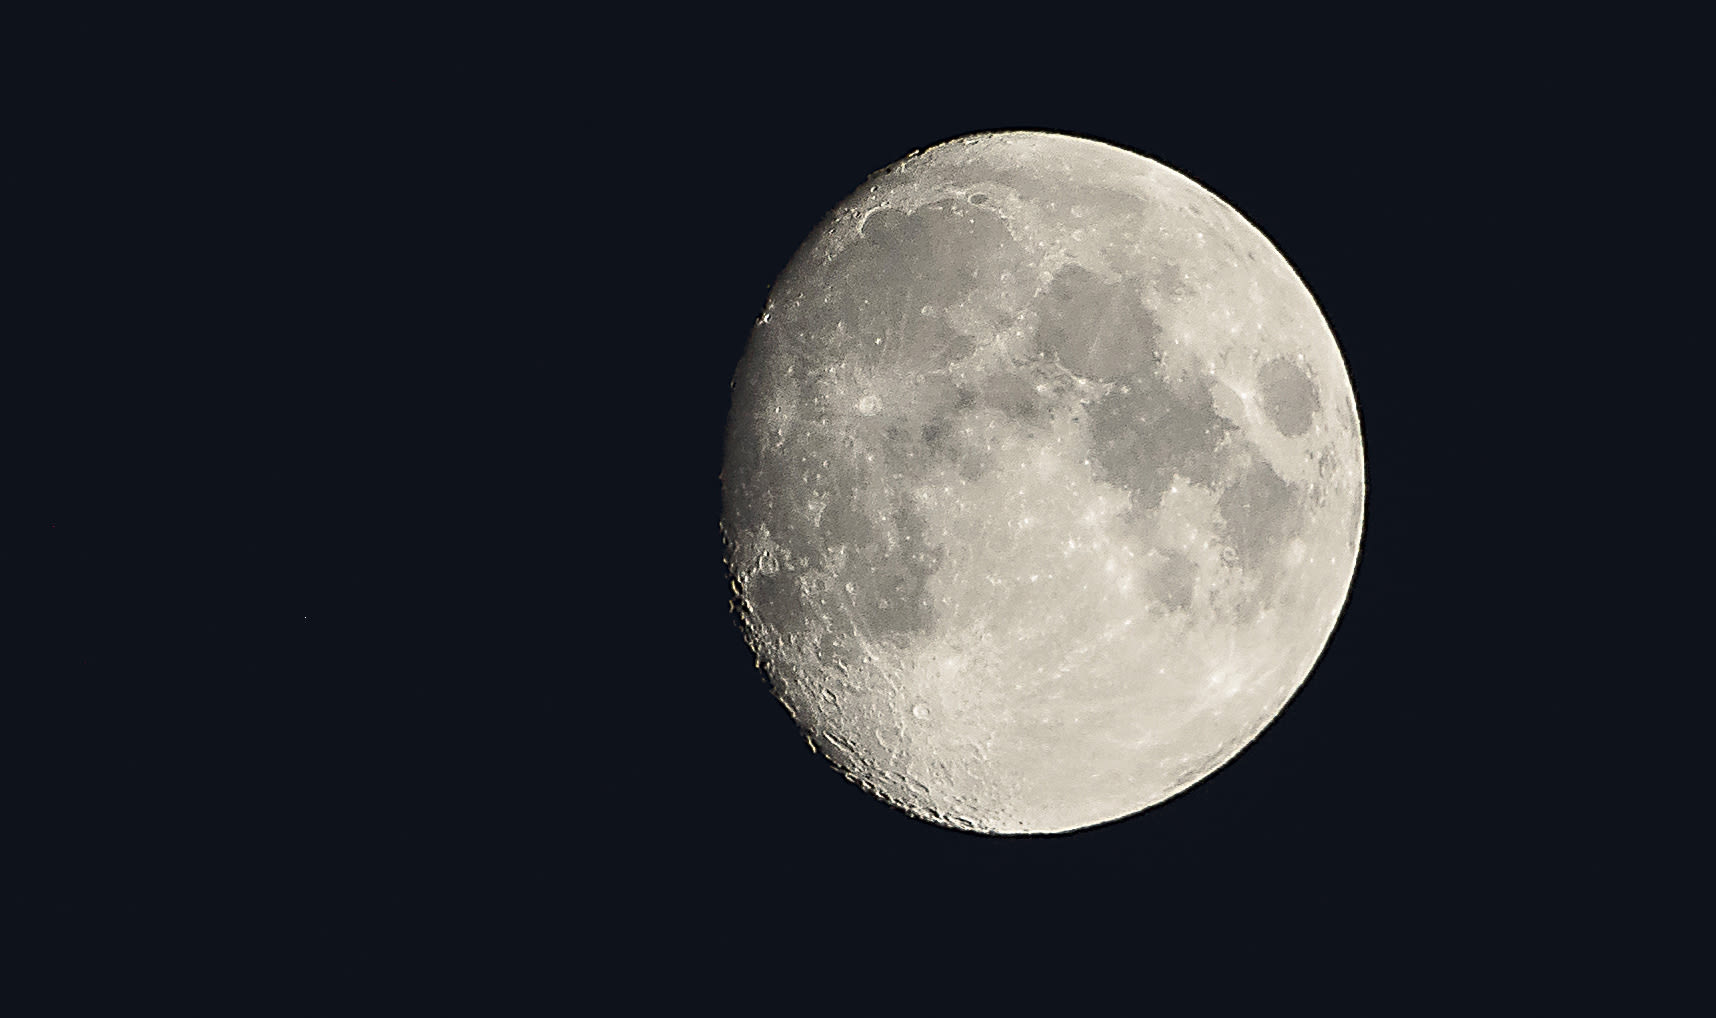 NASA is launching a 4G mobile network on the moon